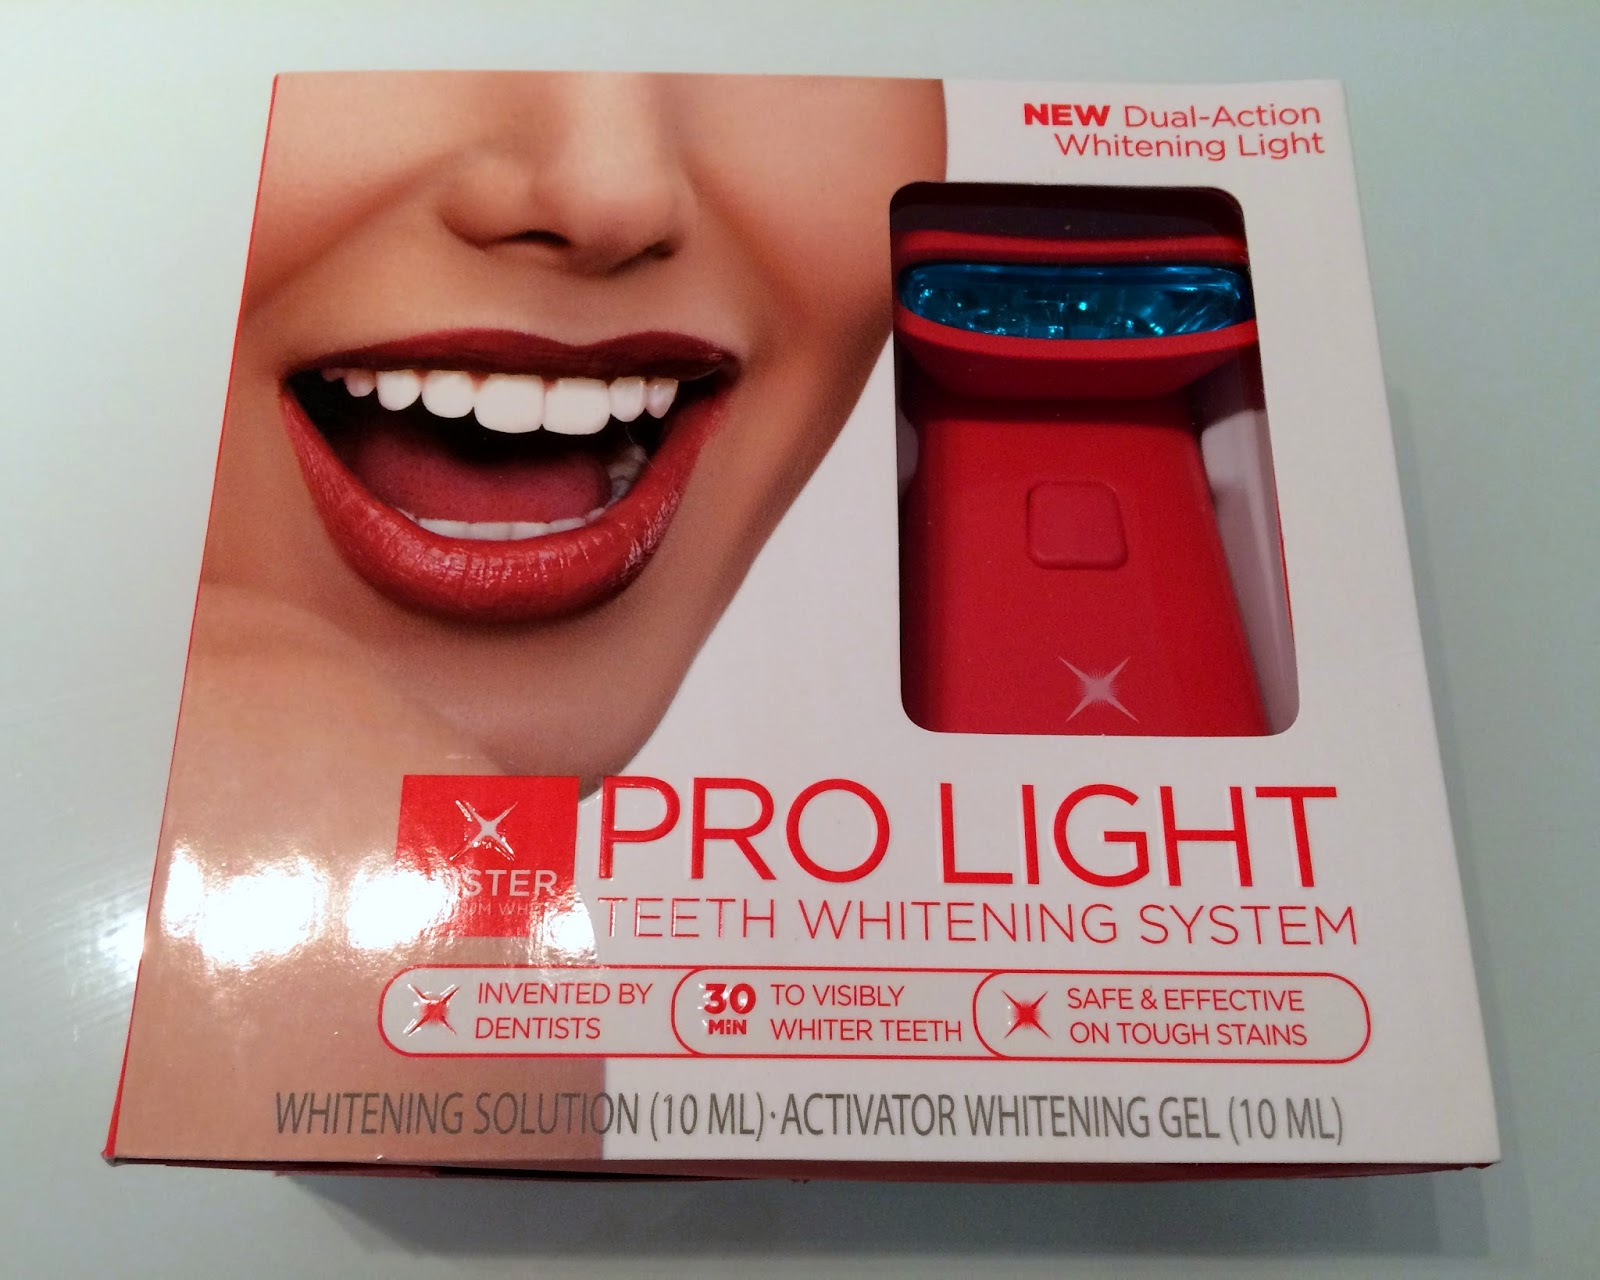 Luster Pro Light, Hollywood Smile, Made In Chelsea, White Teeth, Teeth Whitening At Home, Luster Premium White